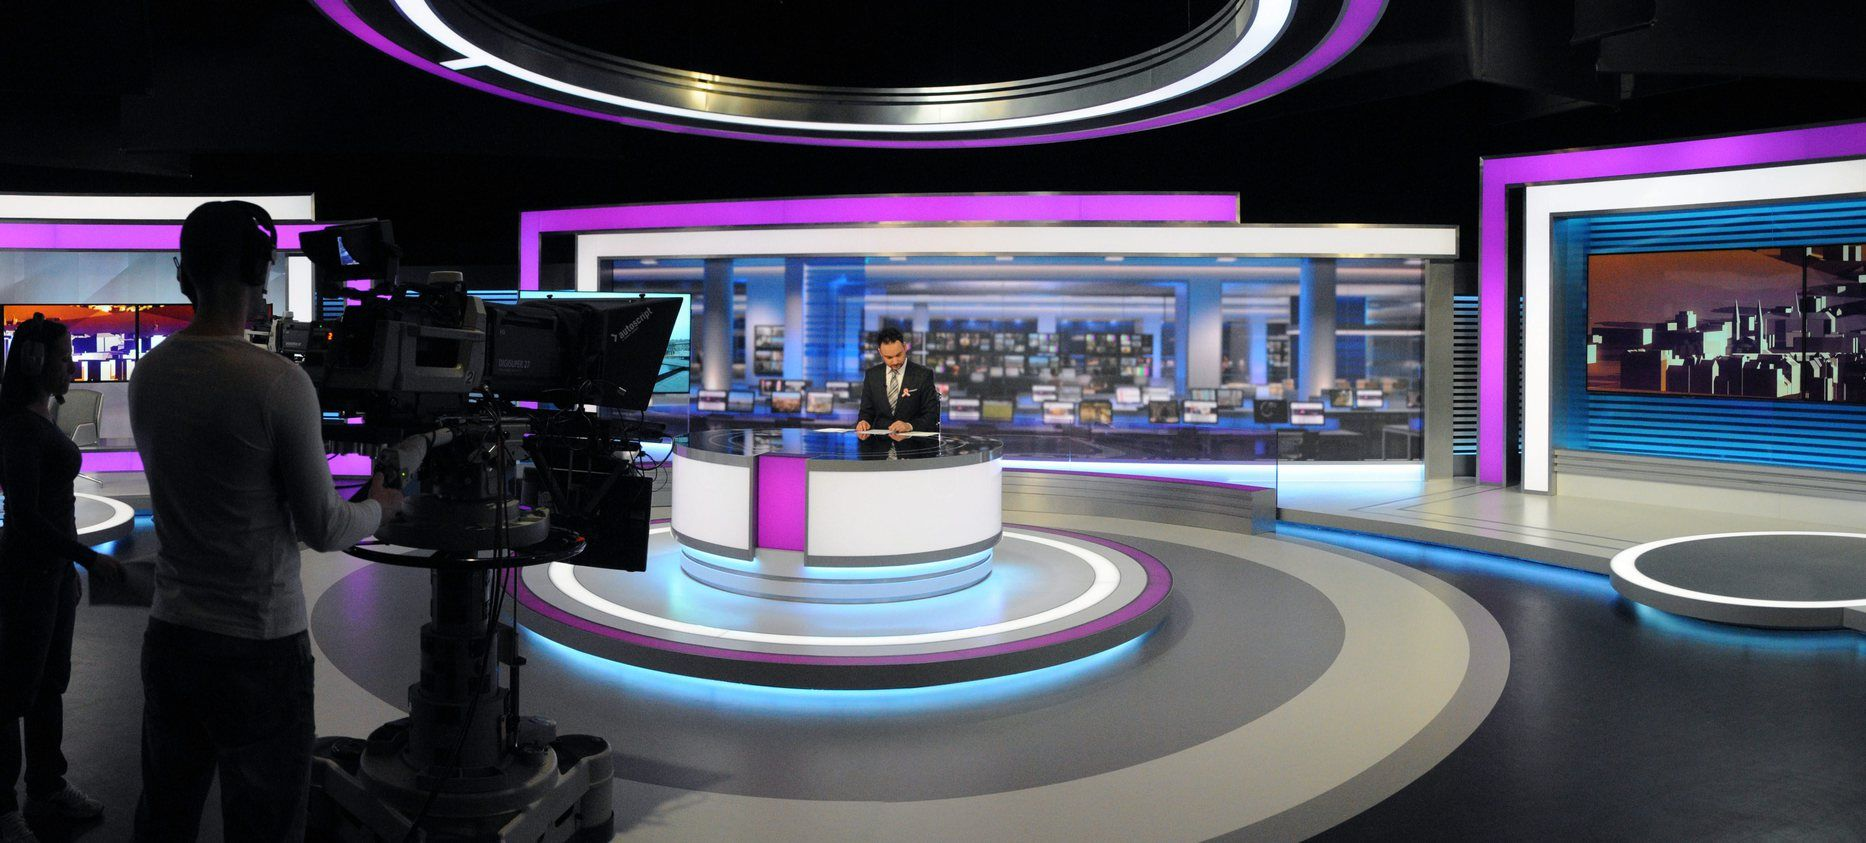 Television news amateur pictures and video